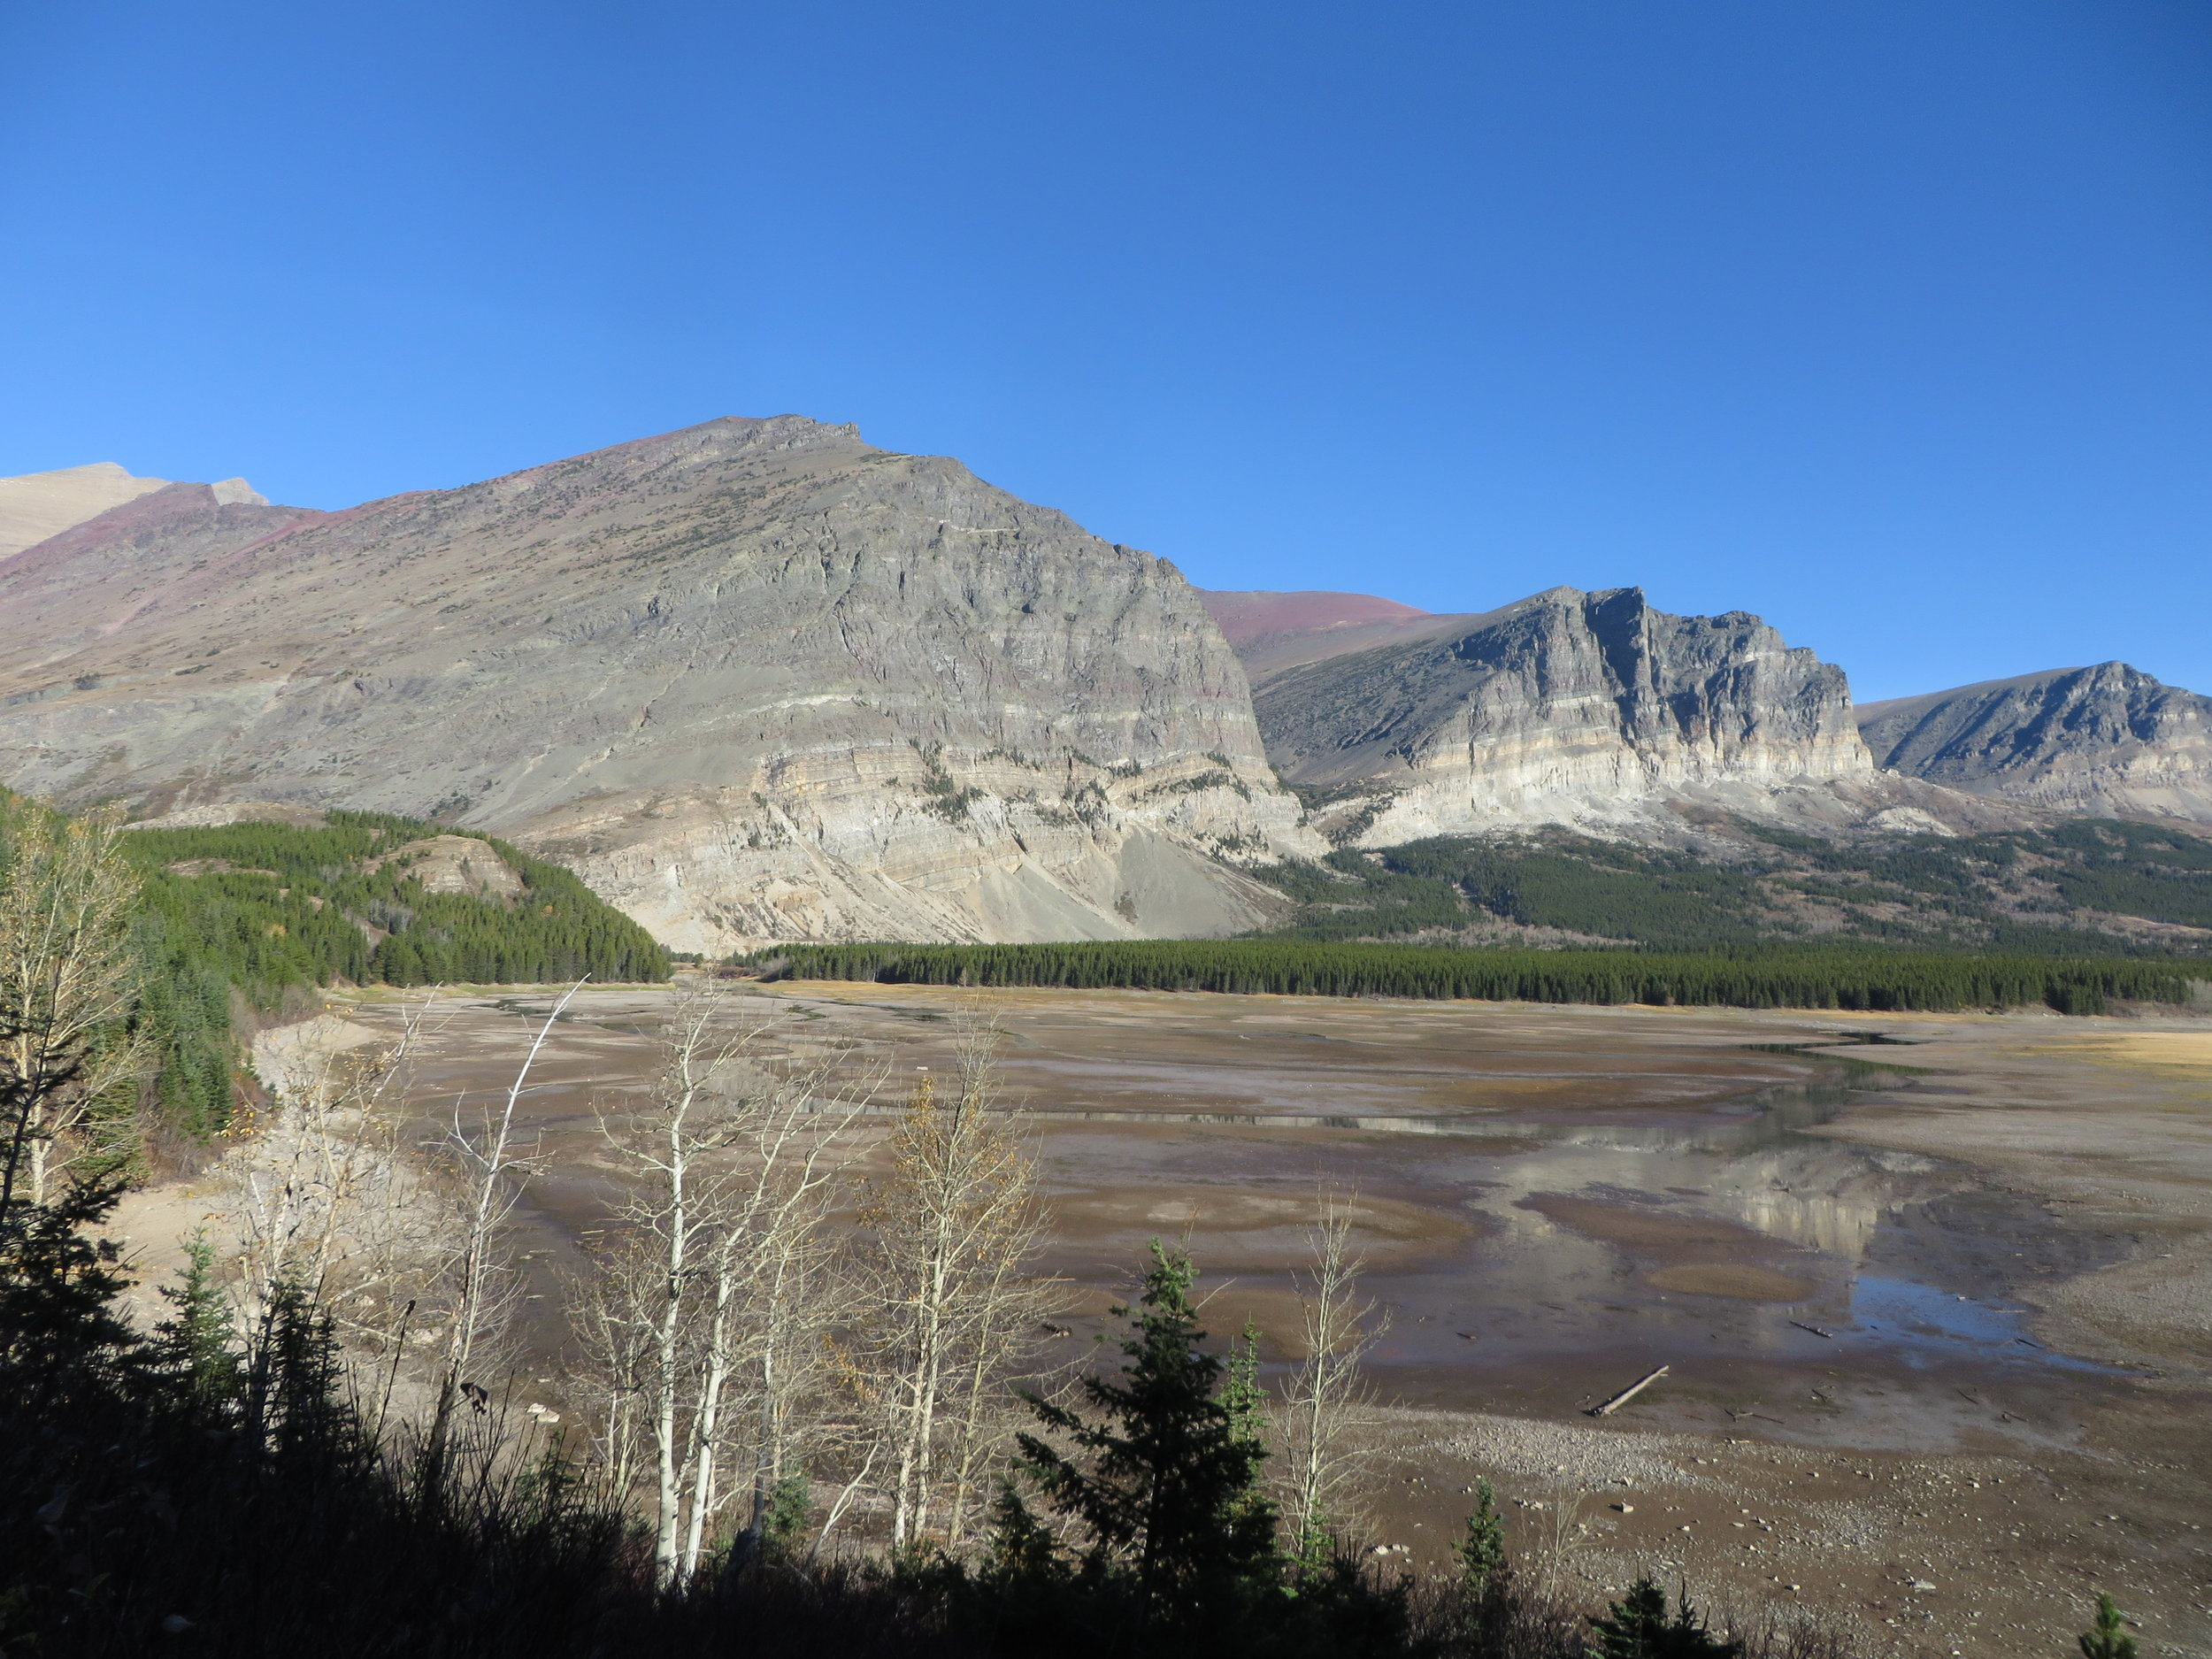 An almost-dry Cracker Flats, with the current Mt. Altyn in the background